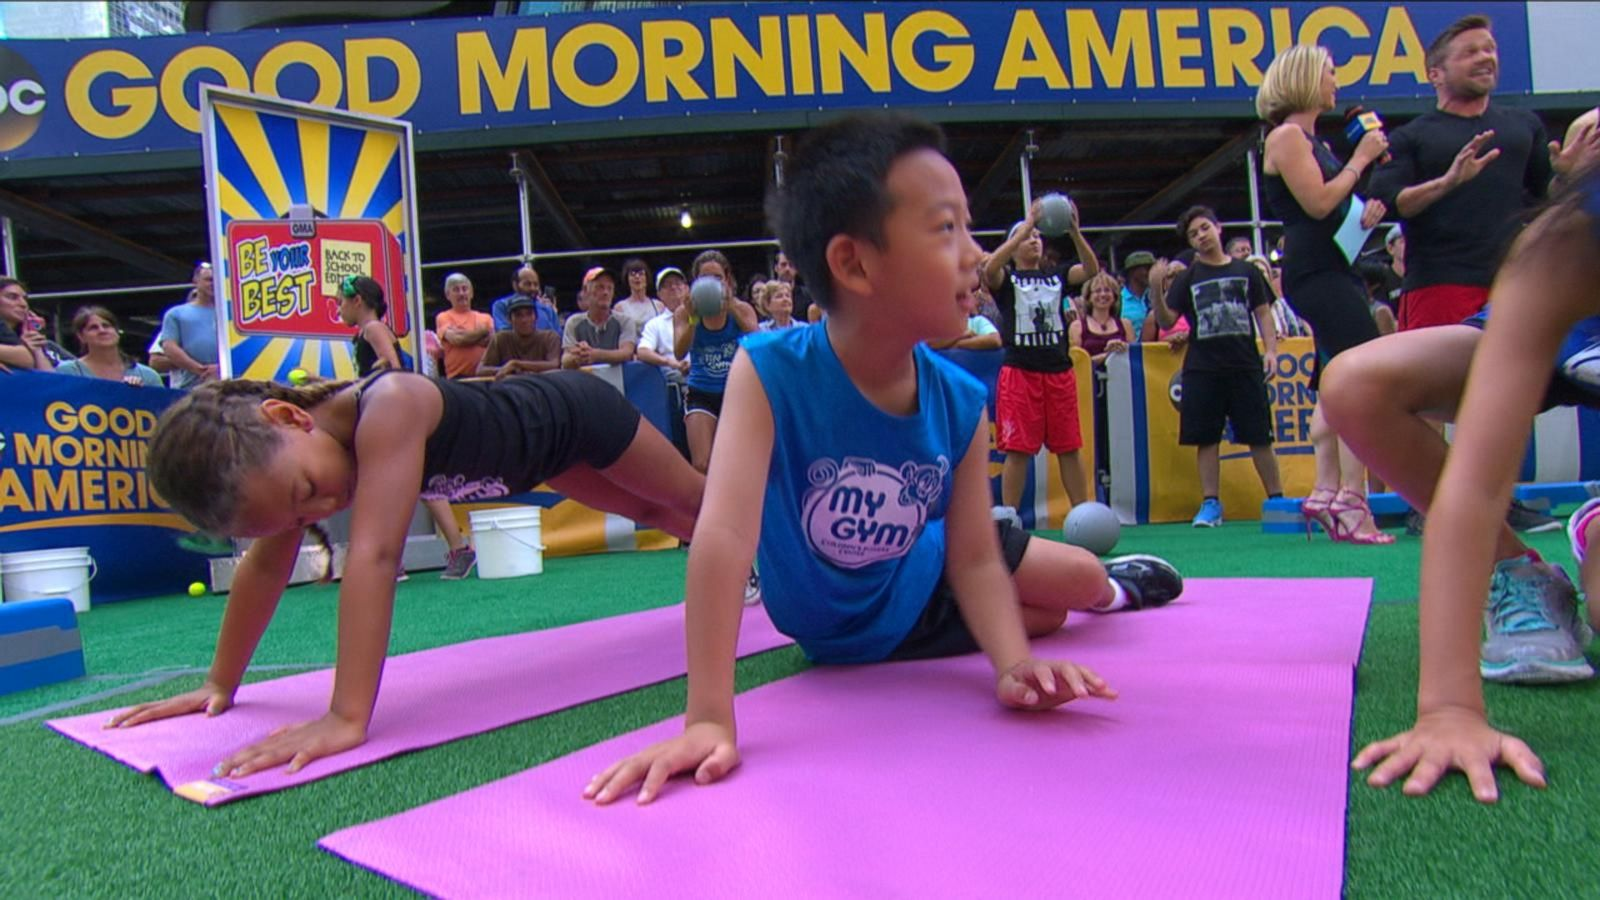 VIDEO: Be Your Best, Back-to-School Edition: Chris Powell Works Out With Kids